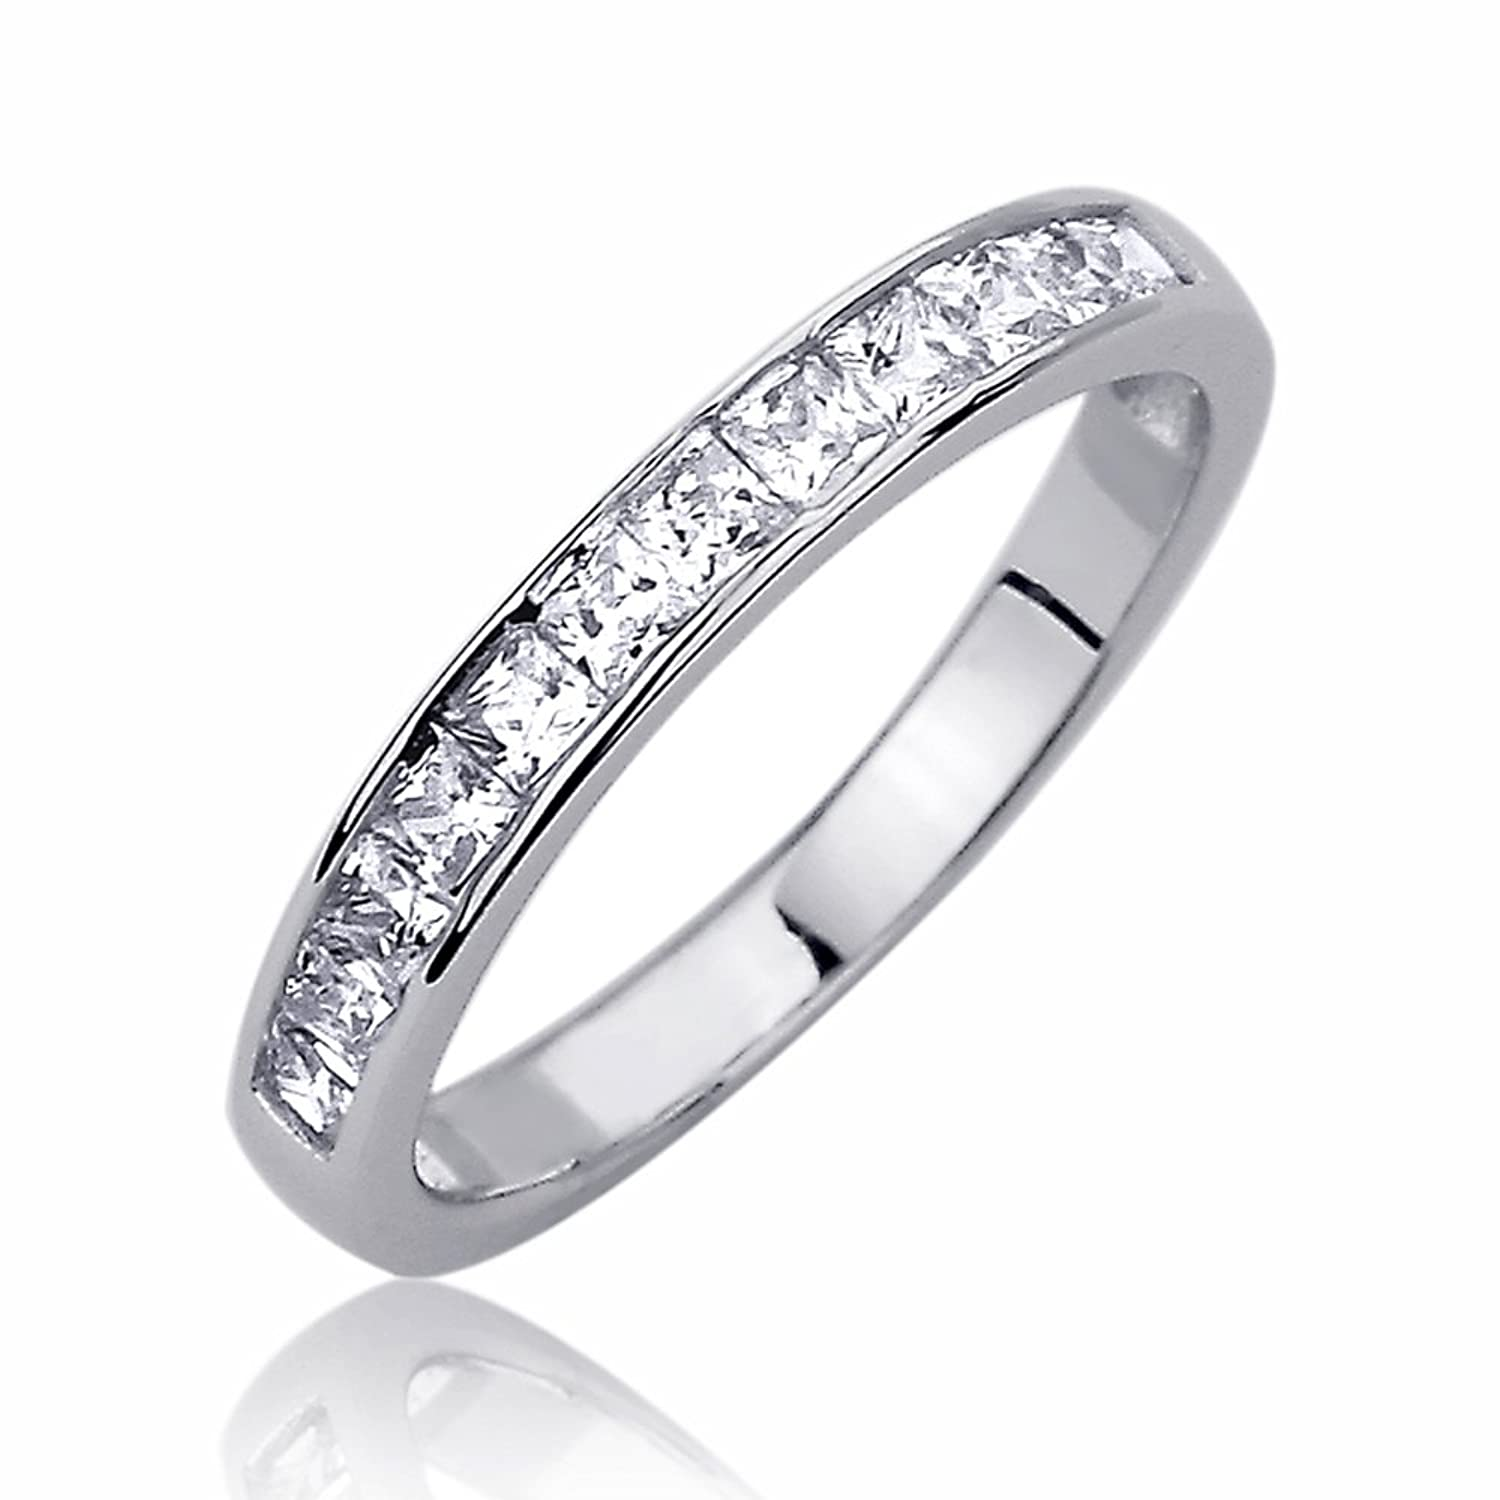 bands wedding louise canada in tw diamond cut rings gold white princess eternity band ann jewellers contour